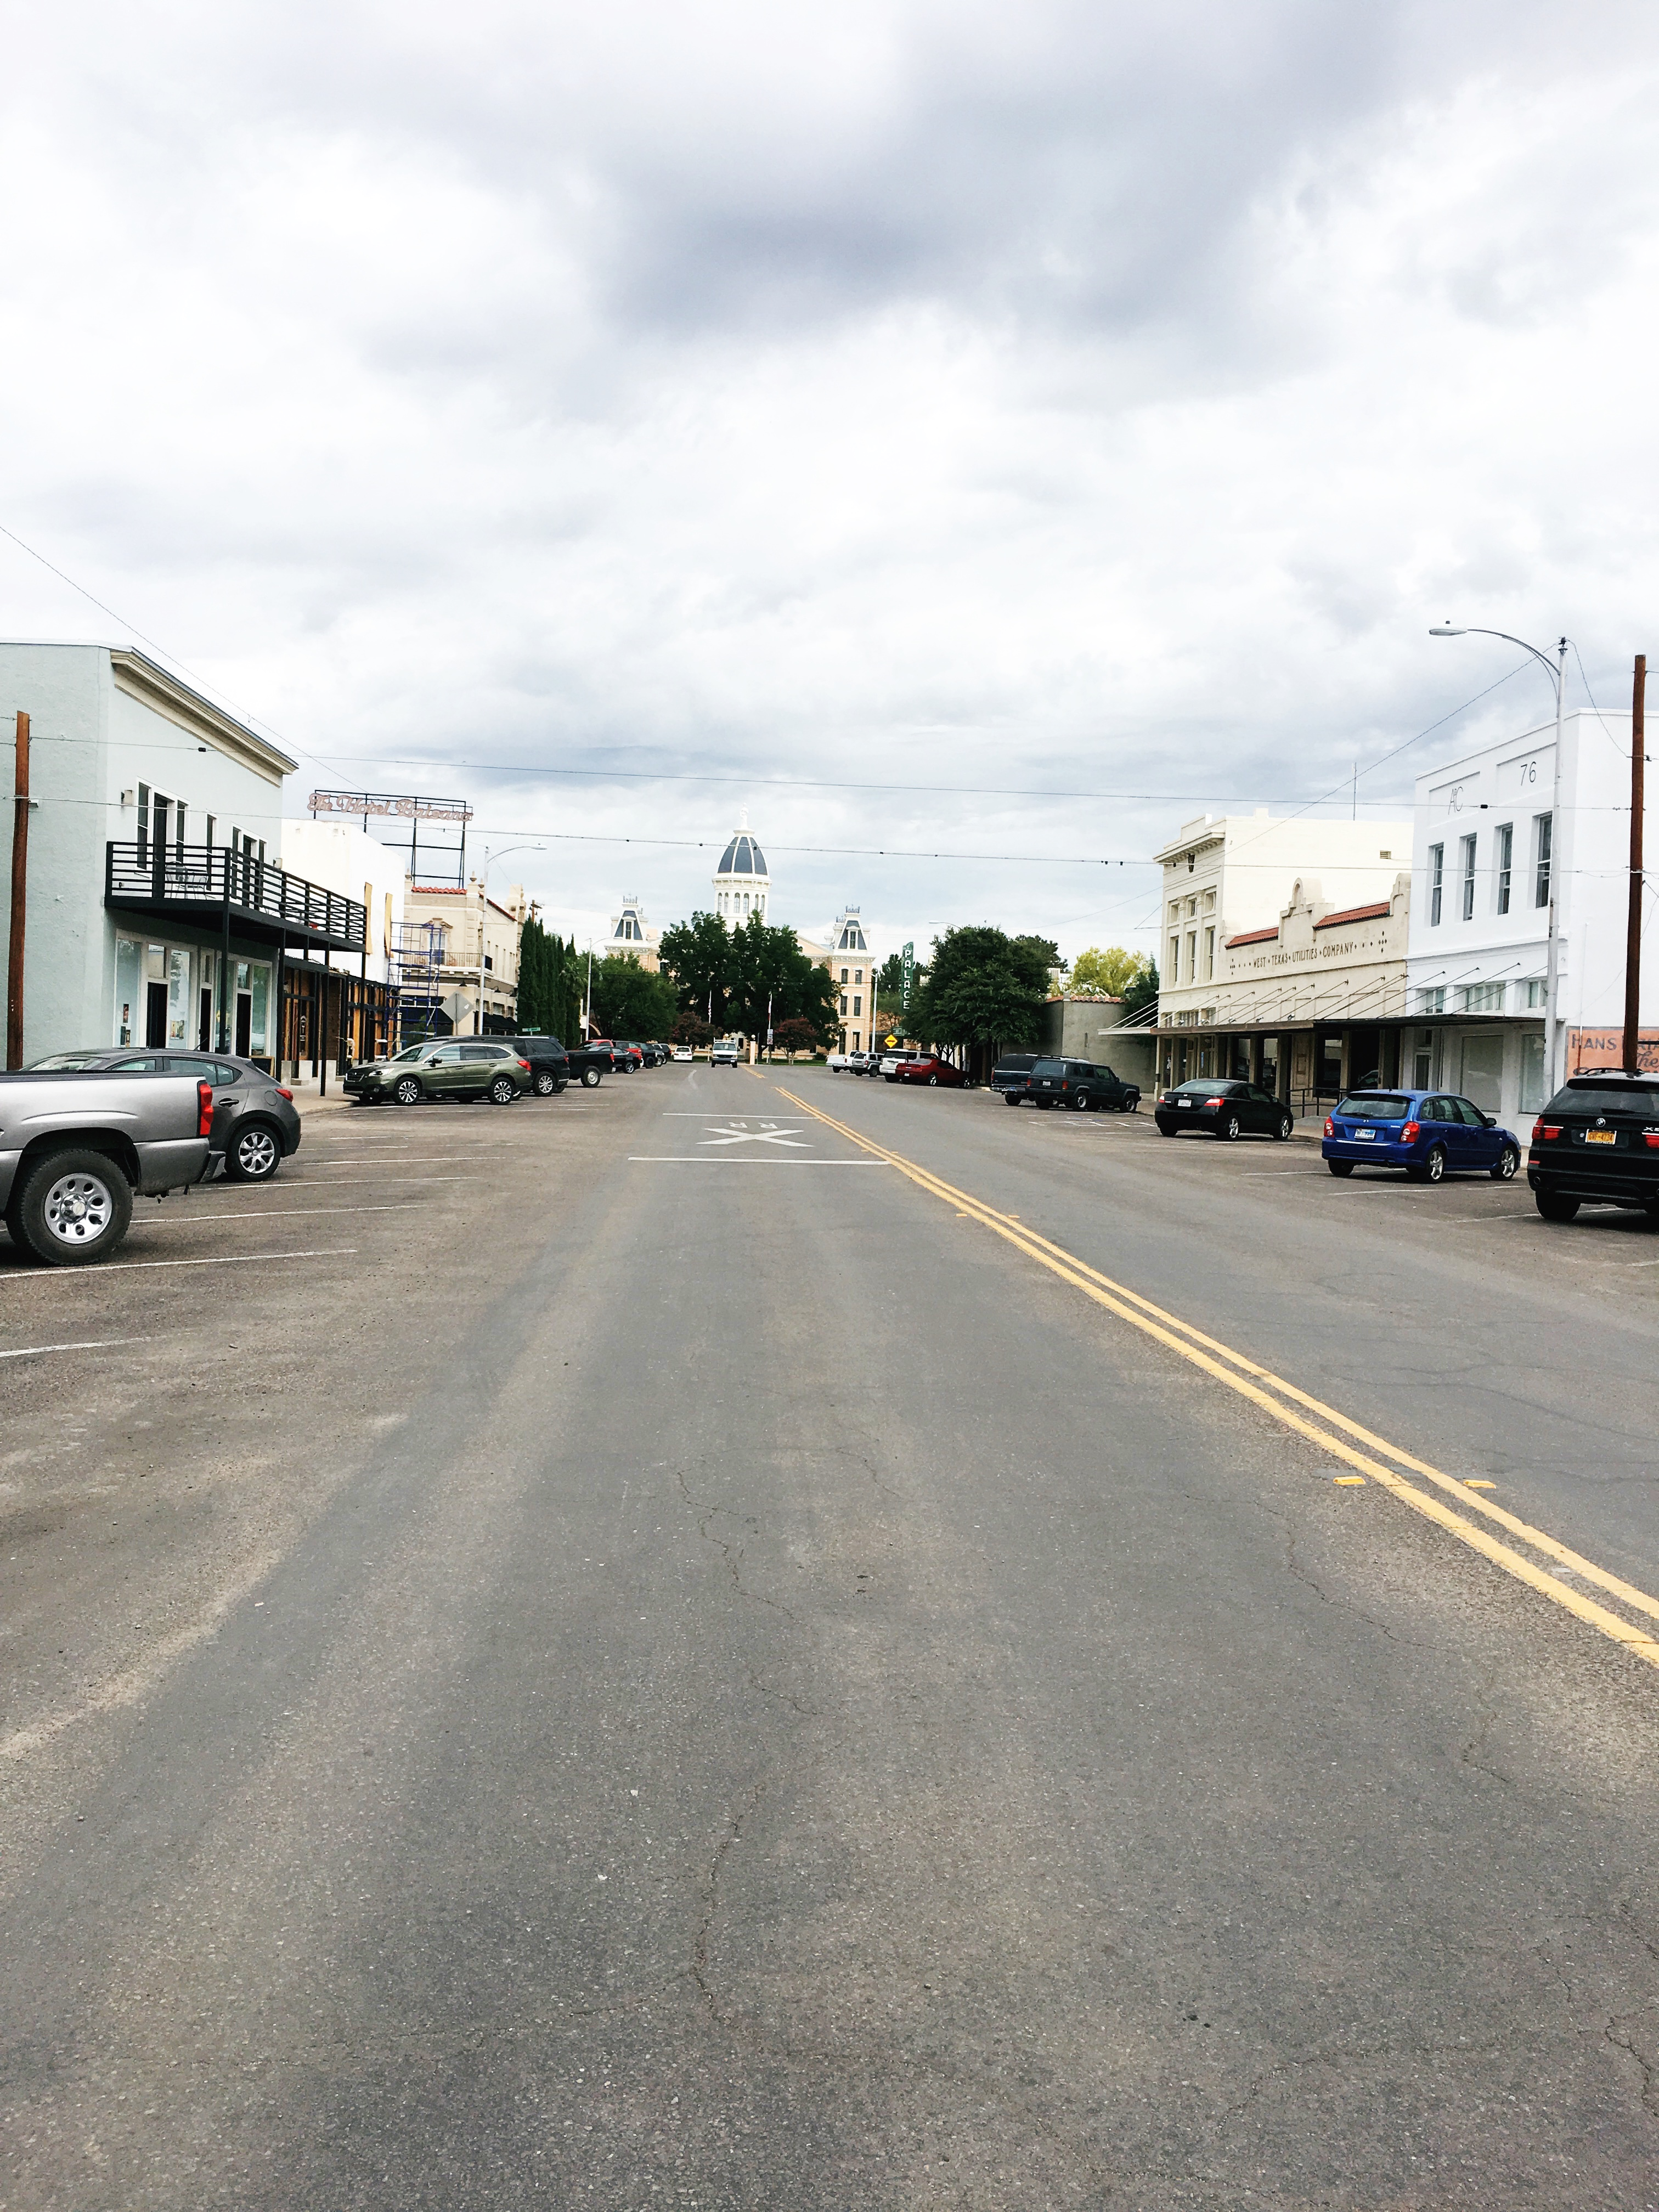 24 Hour Guide to Marfa, Texas | West Texas | AMS a fashion and lifestyle college blog |